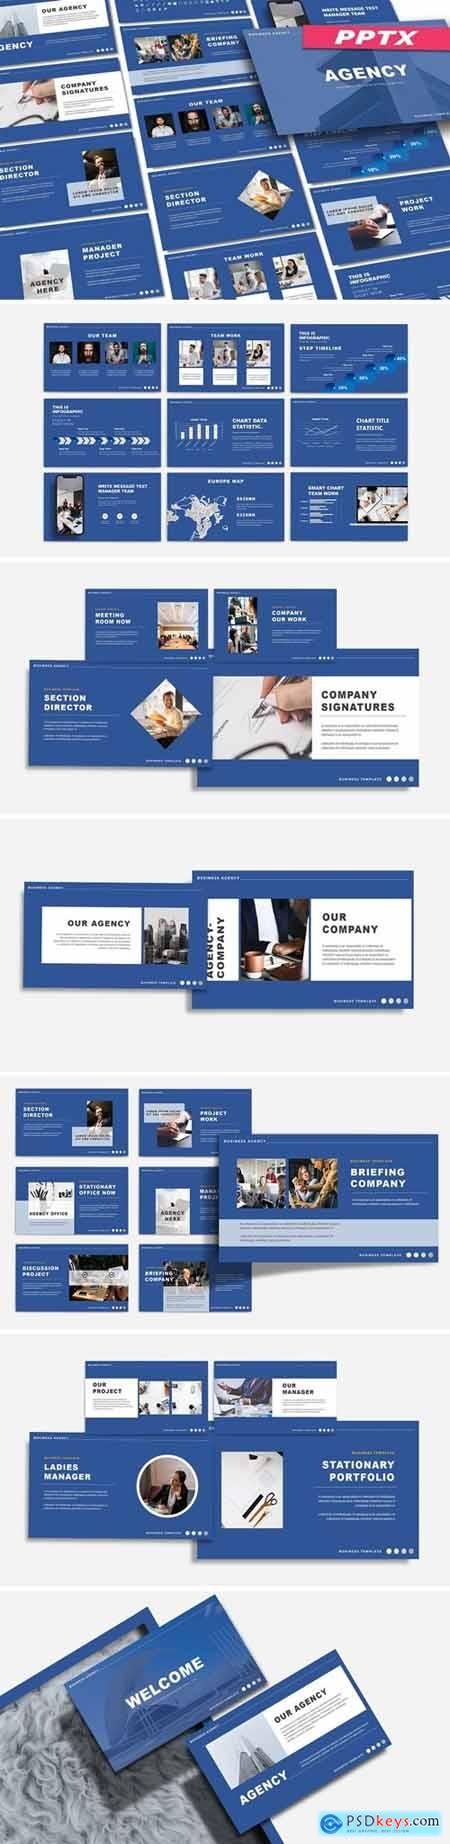 AGENCY - BUSINESS Powerpoint, Keynote and Google Slides Templates